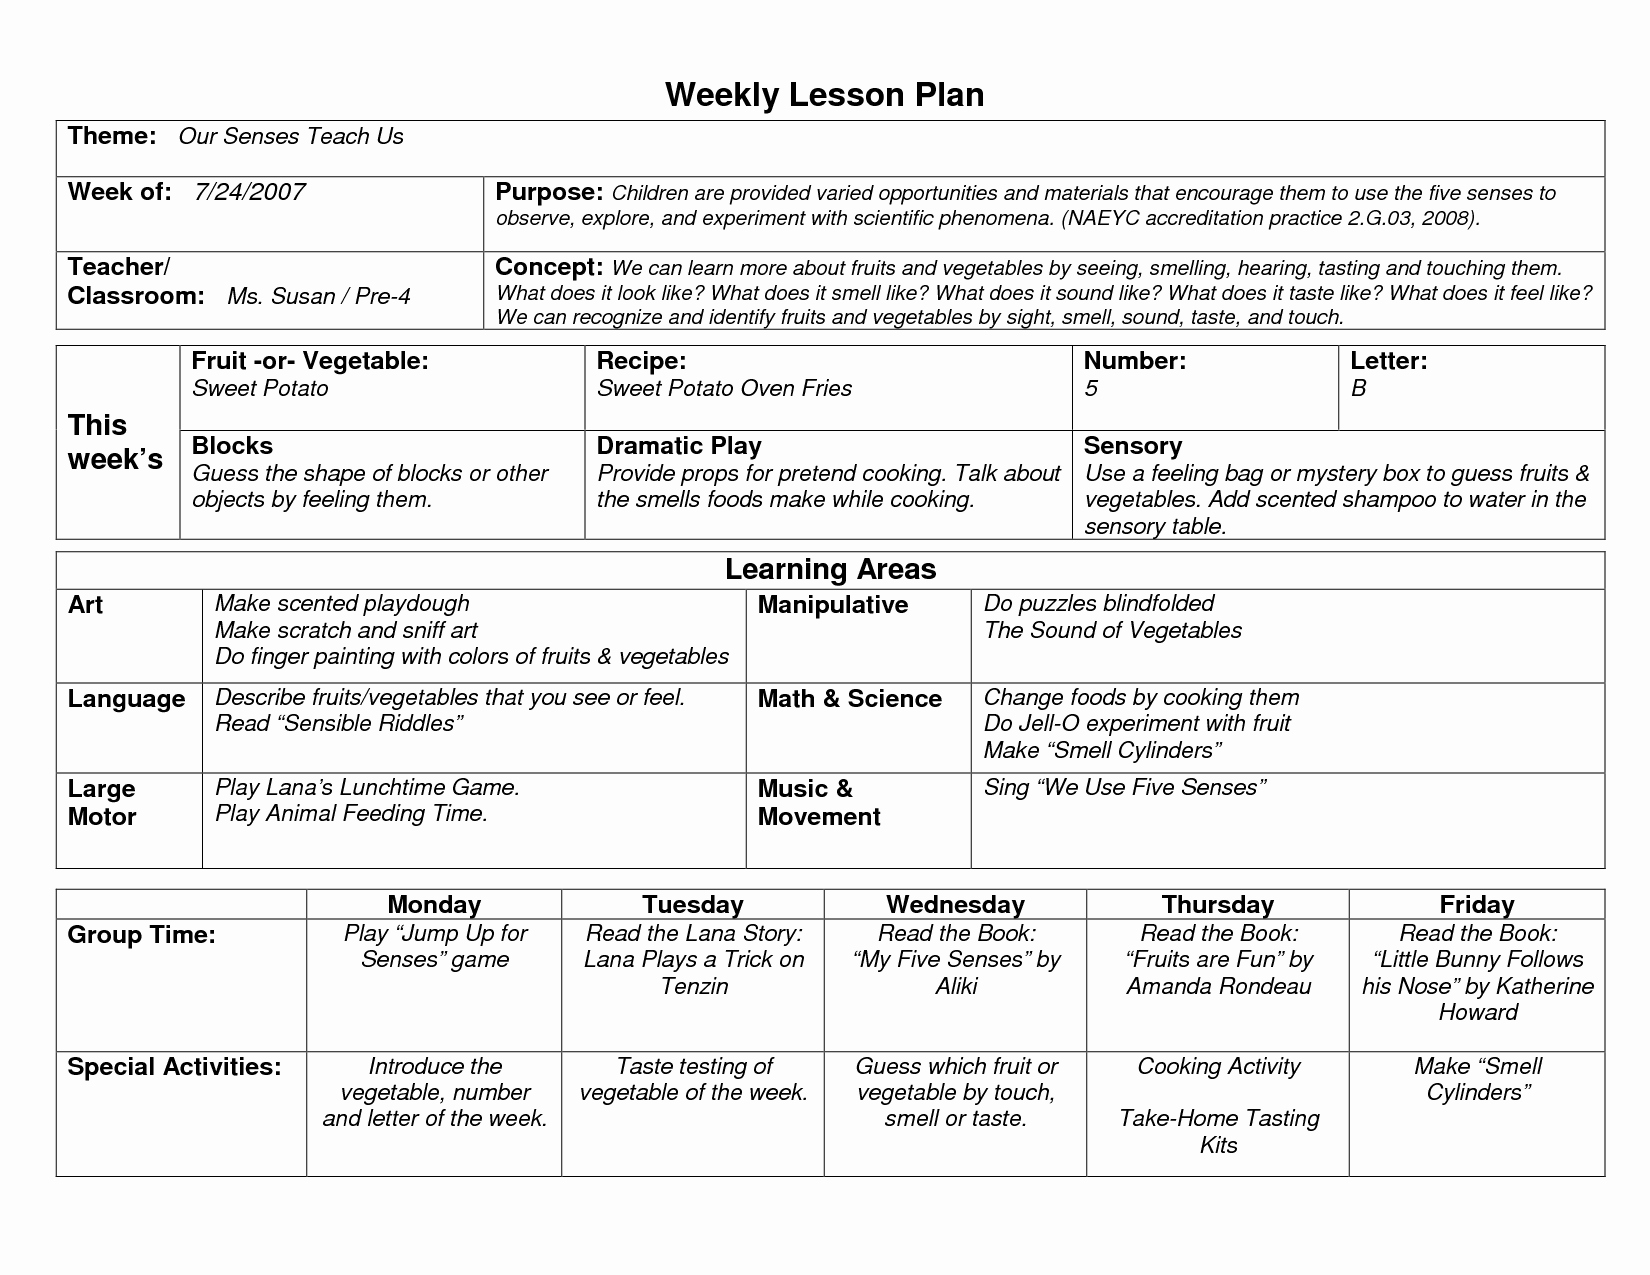 Weekly Lesson Plan for Preschool Best Of Naeyc Lesson Plan Template for Preschool